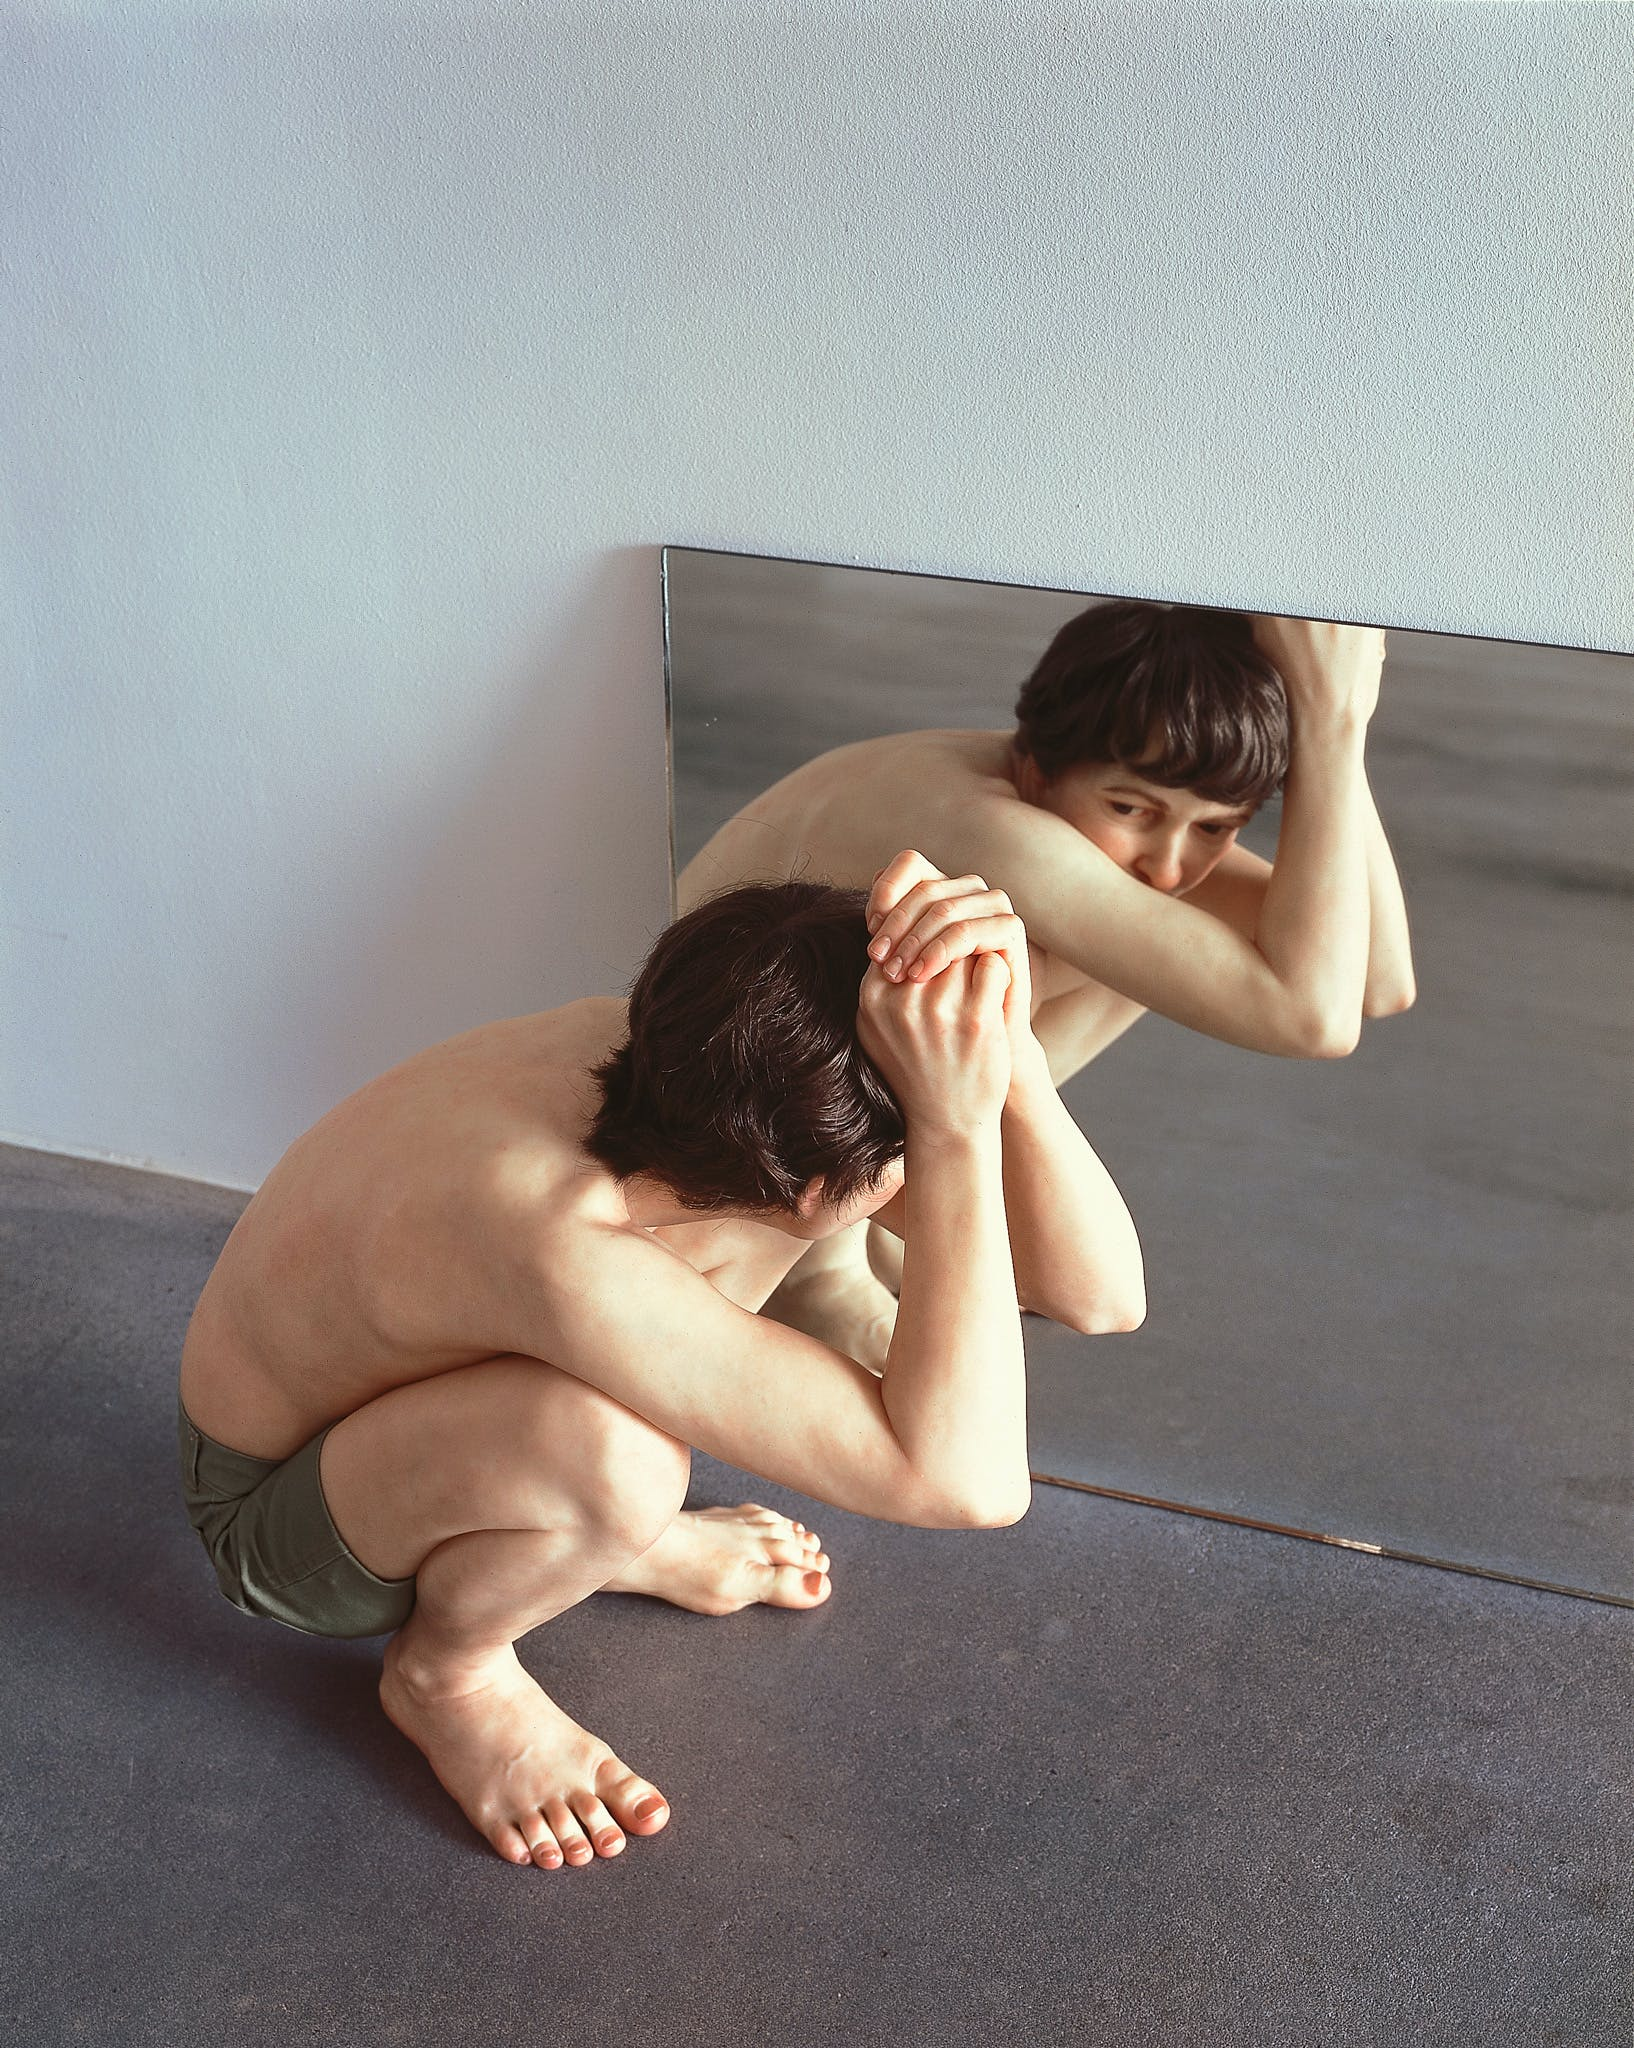 Ron Mueck, Crouching Boy in Mirror, 1999-2000